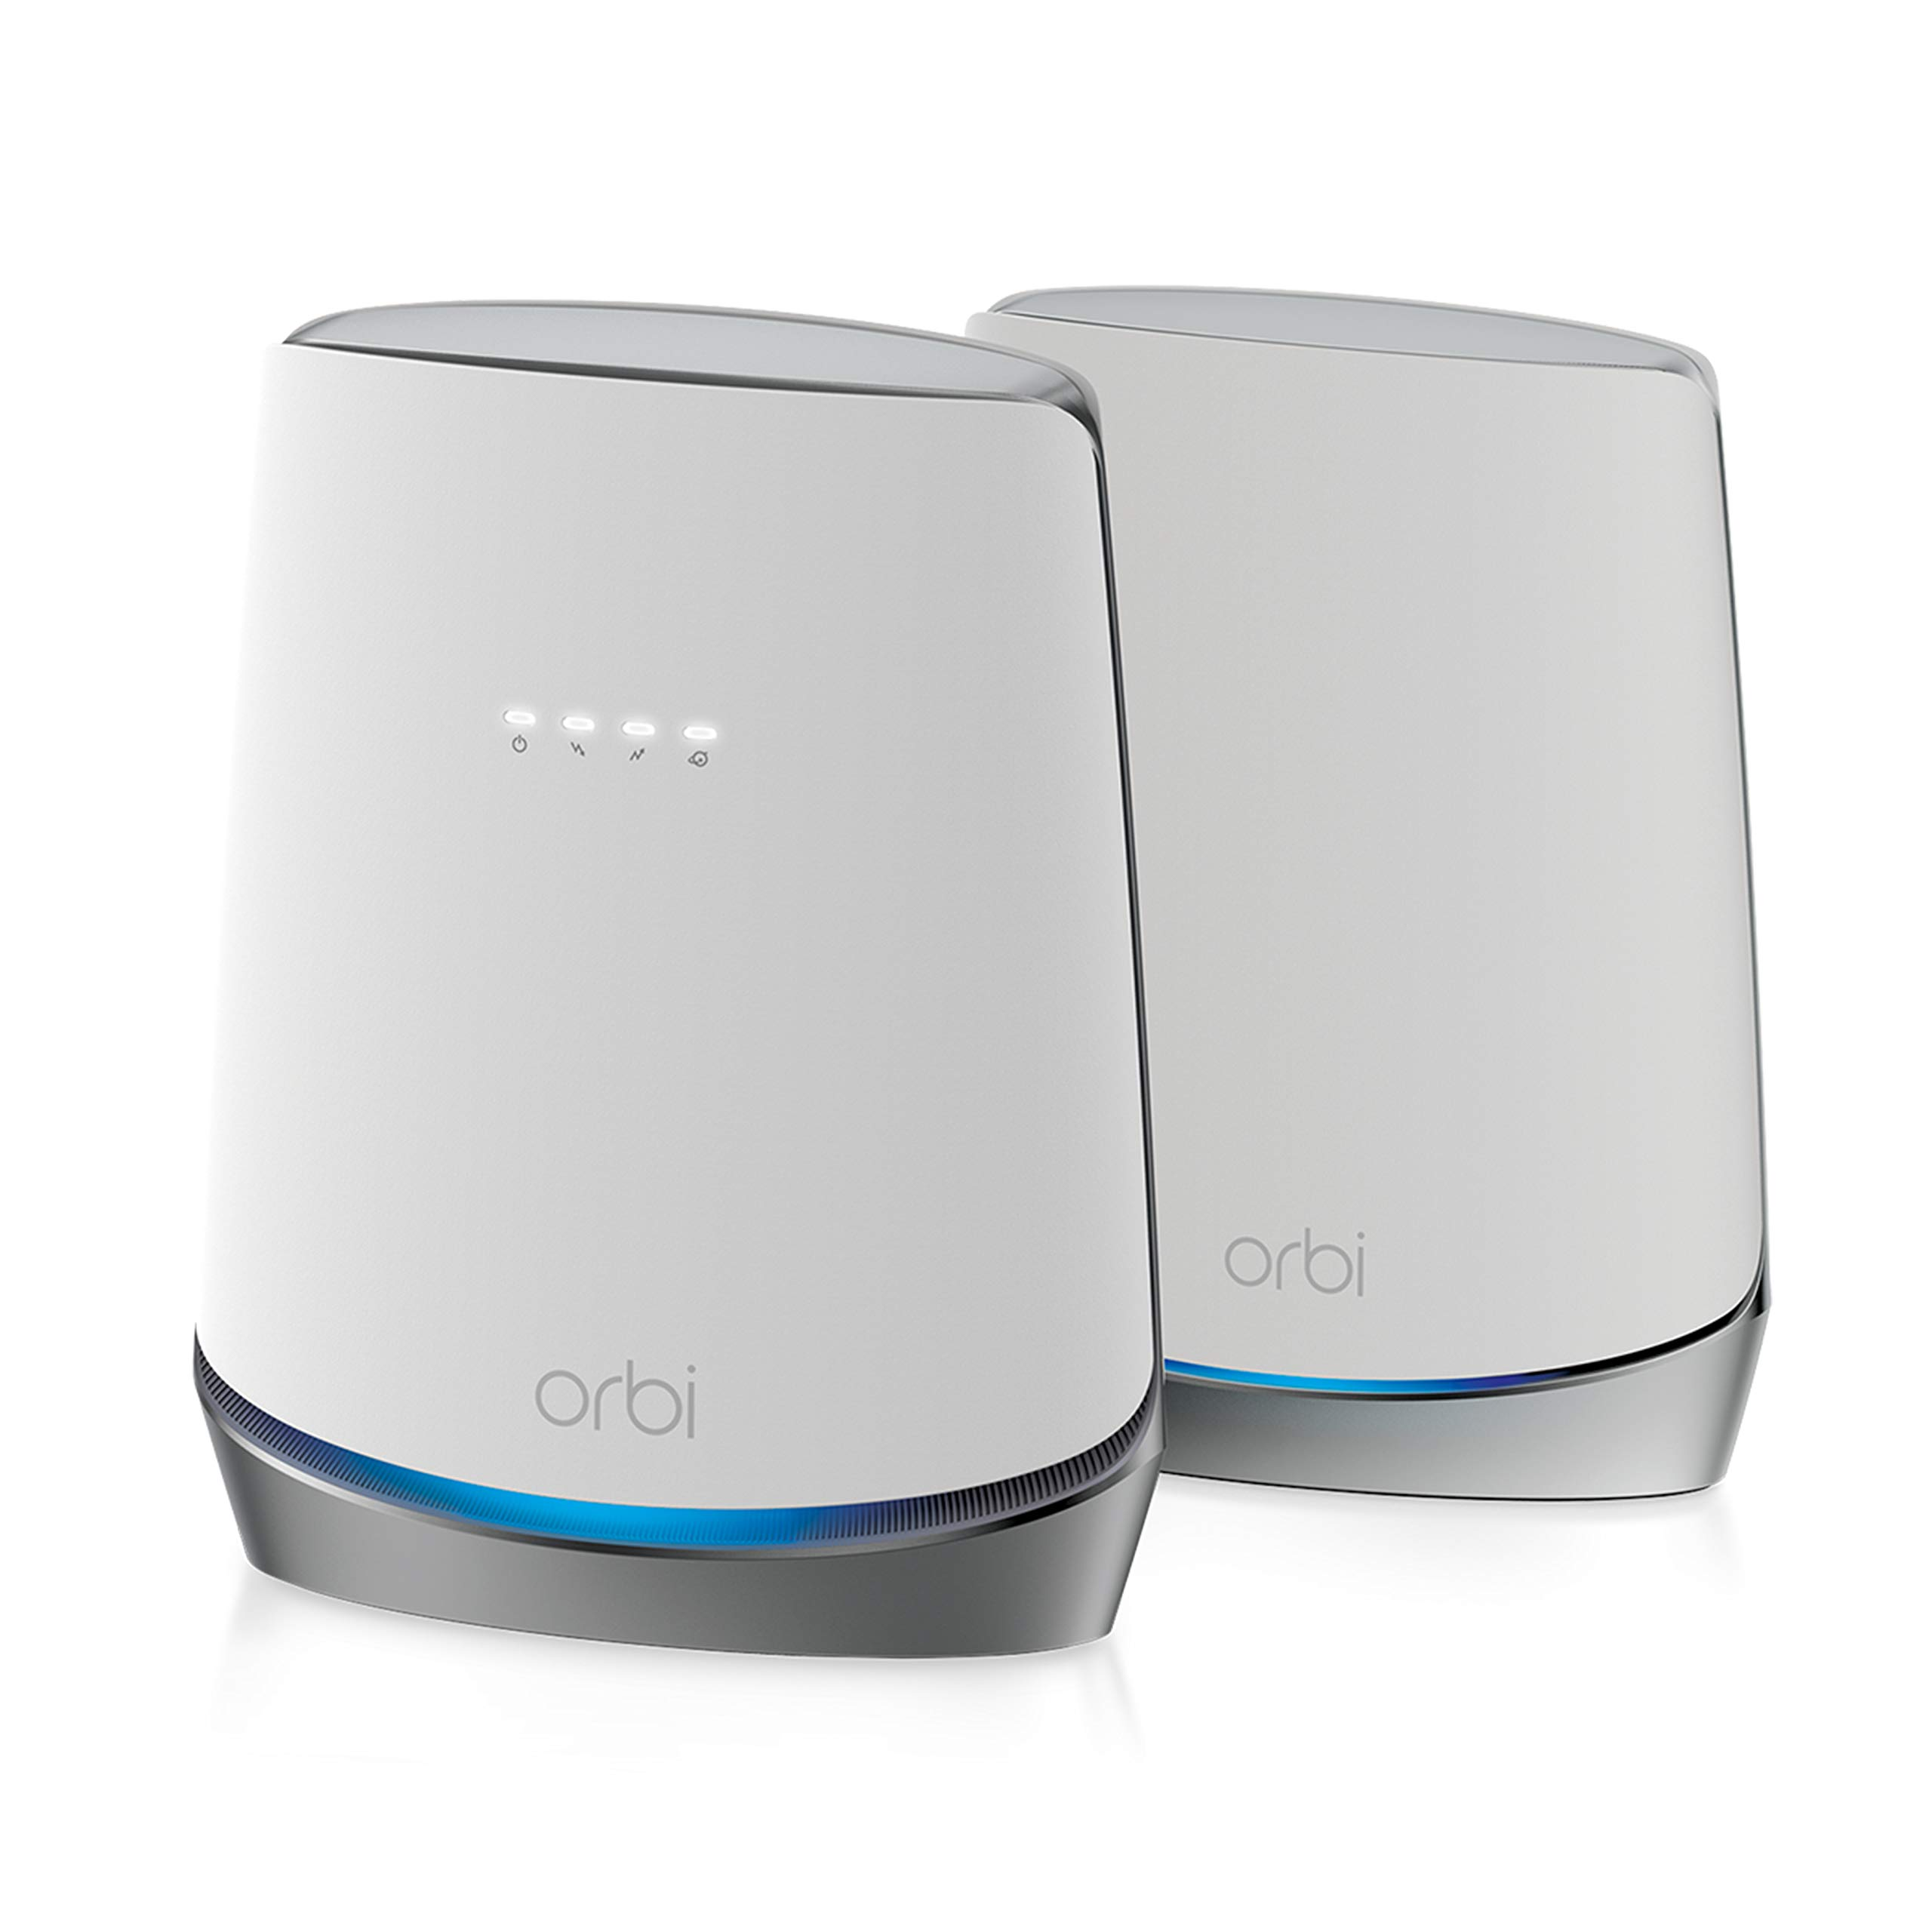 NETGEAR Orbi Whole Home WiFi 6 System with DOCSIS 3.1 Built-in Cable Modem (CBK752) – Cable Modem Router + 1 Satellite Extender   Covers up to 5,000 sq. ft. 40+ Devices   AX4200 (Up to 4.2Gbps)